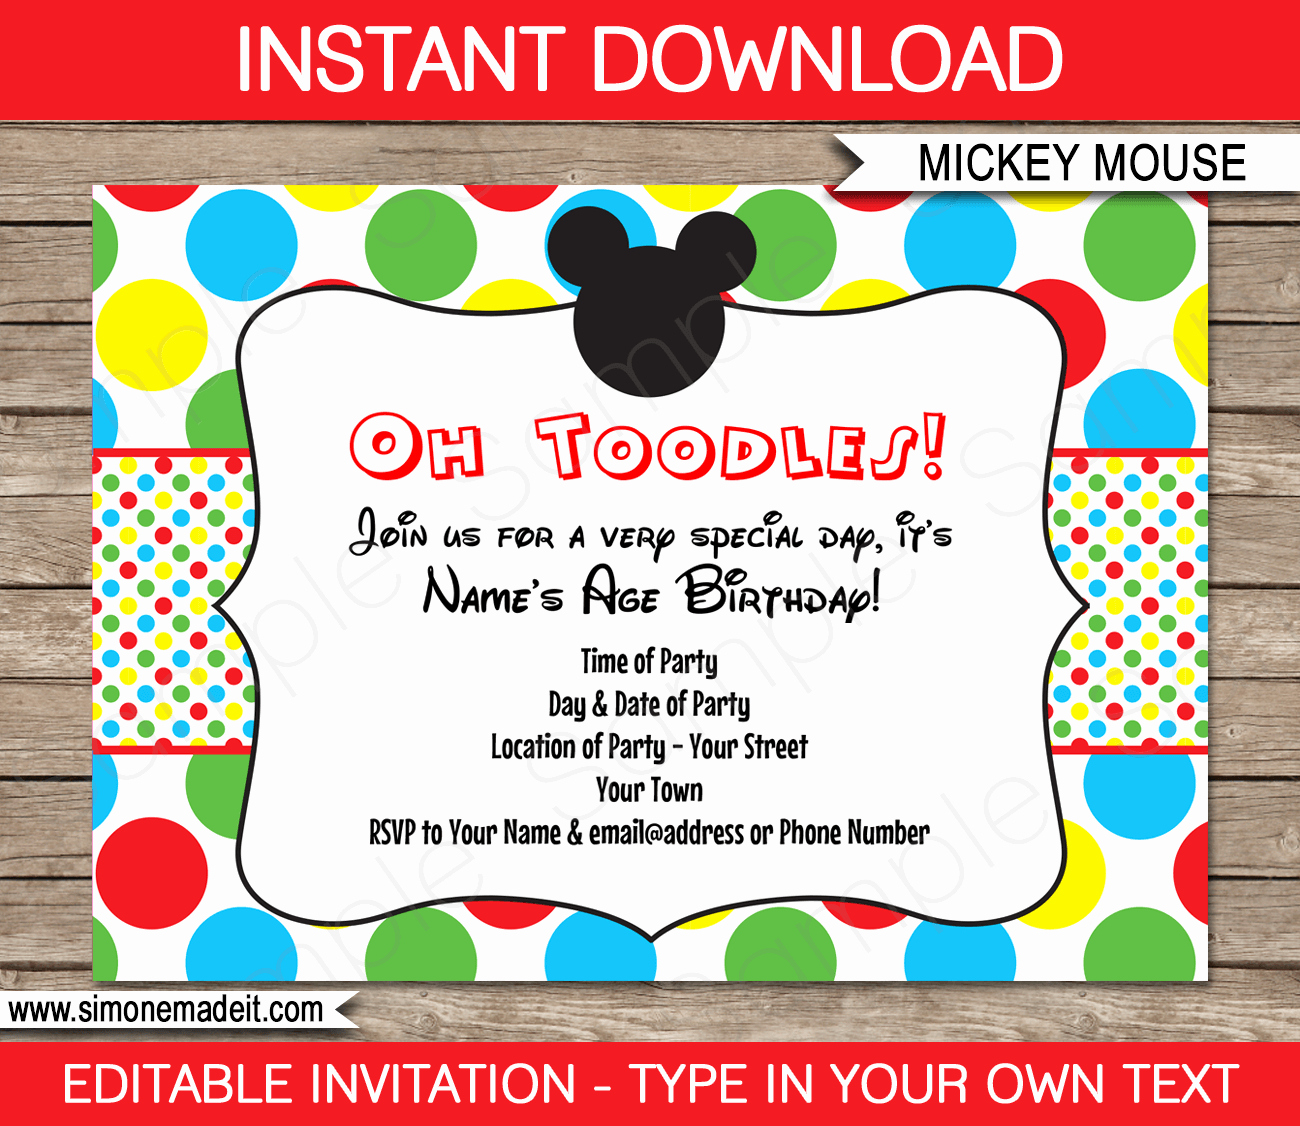 Mickey Mouse Invitations Template Lovely Mickey Mouse Party Invitations Template